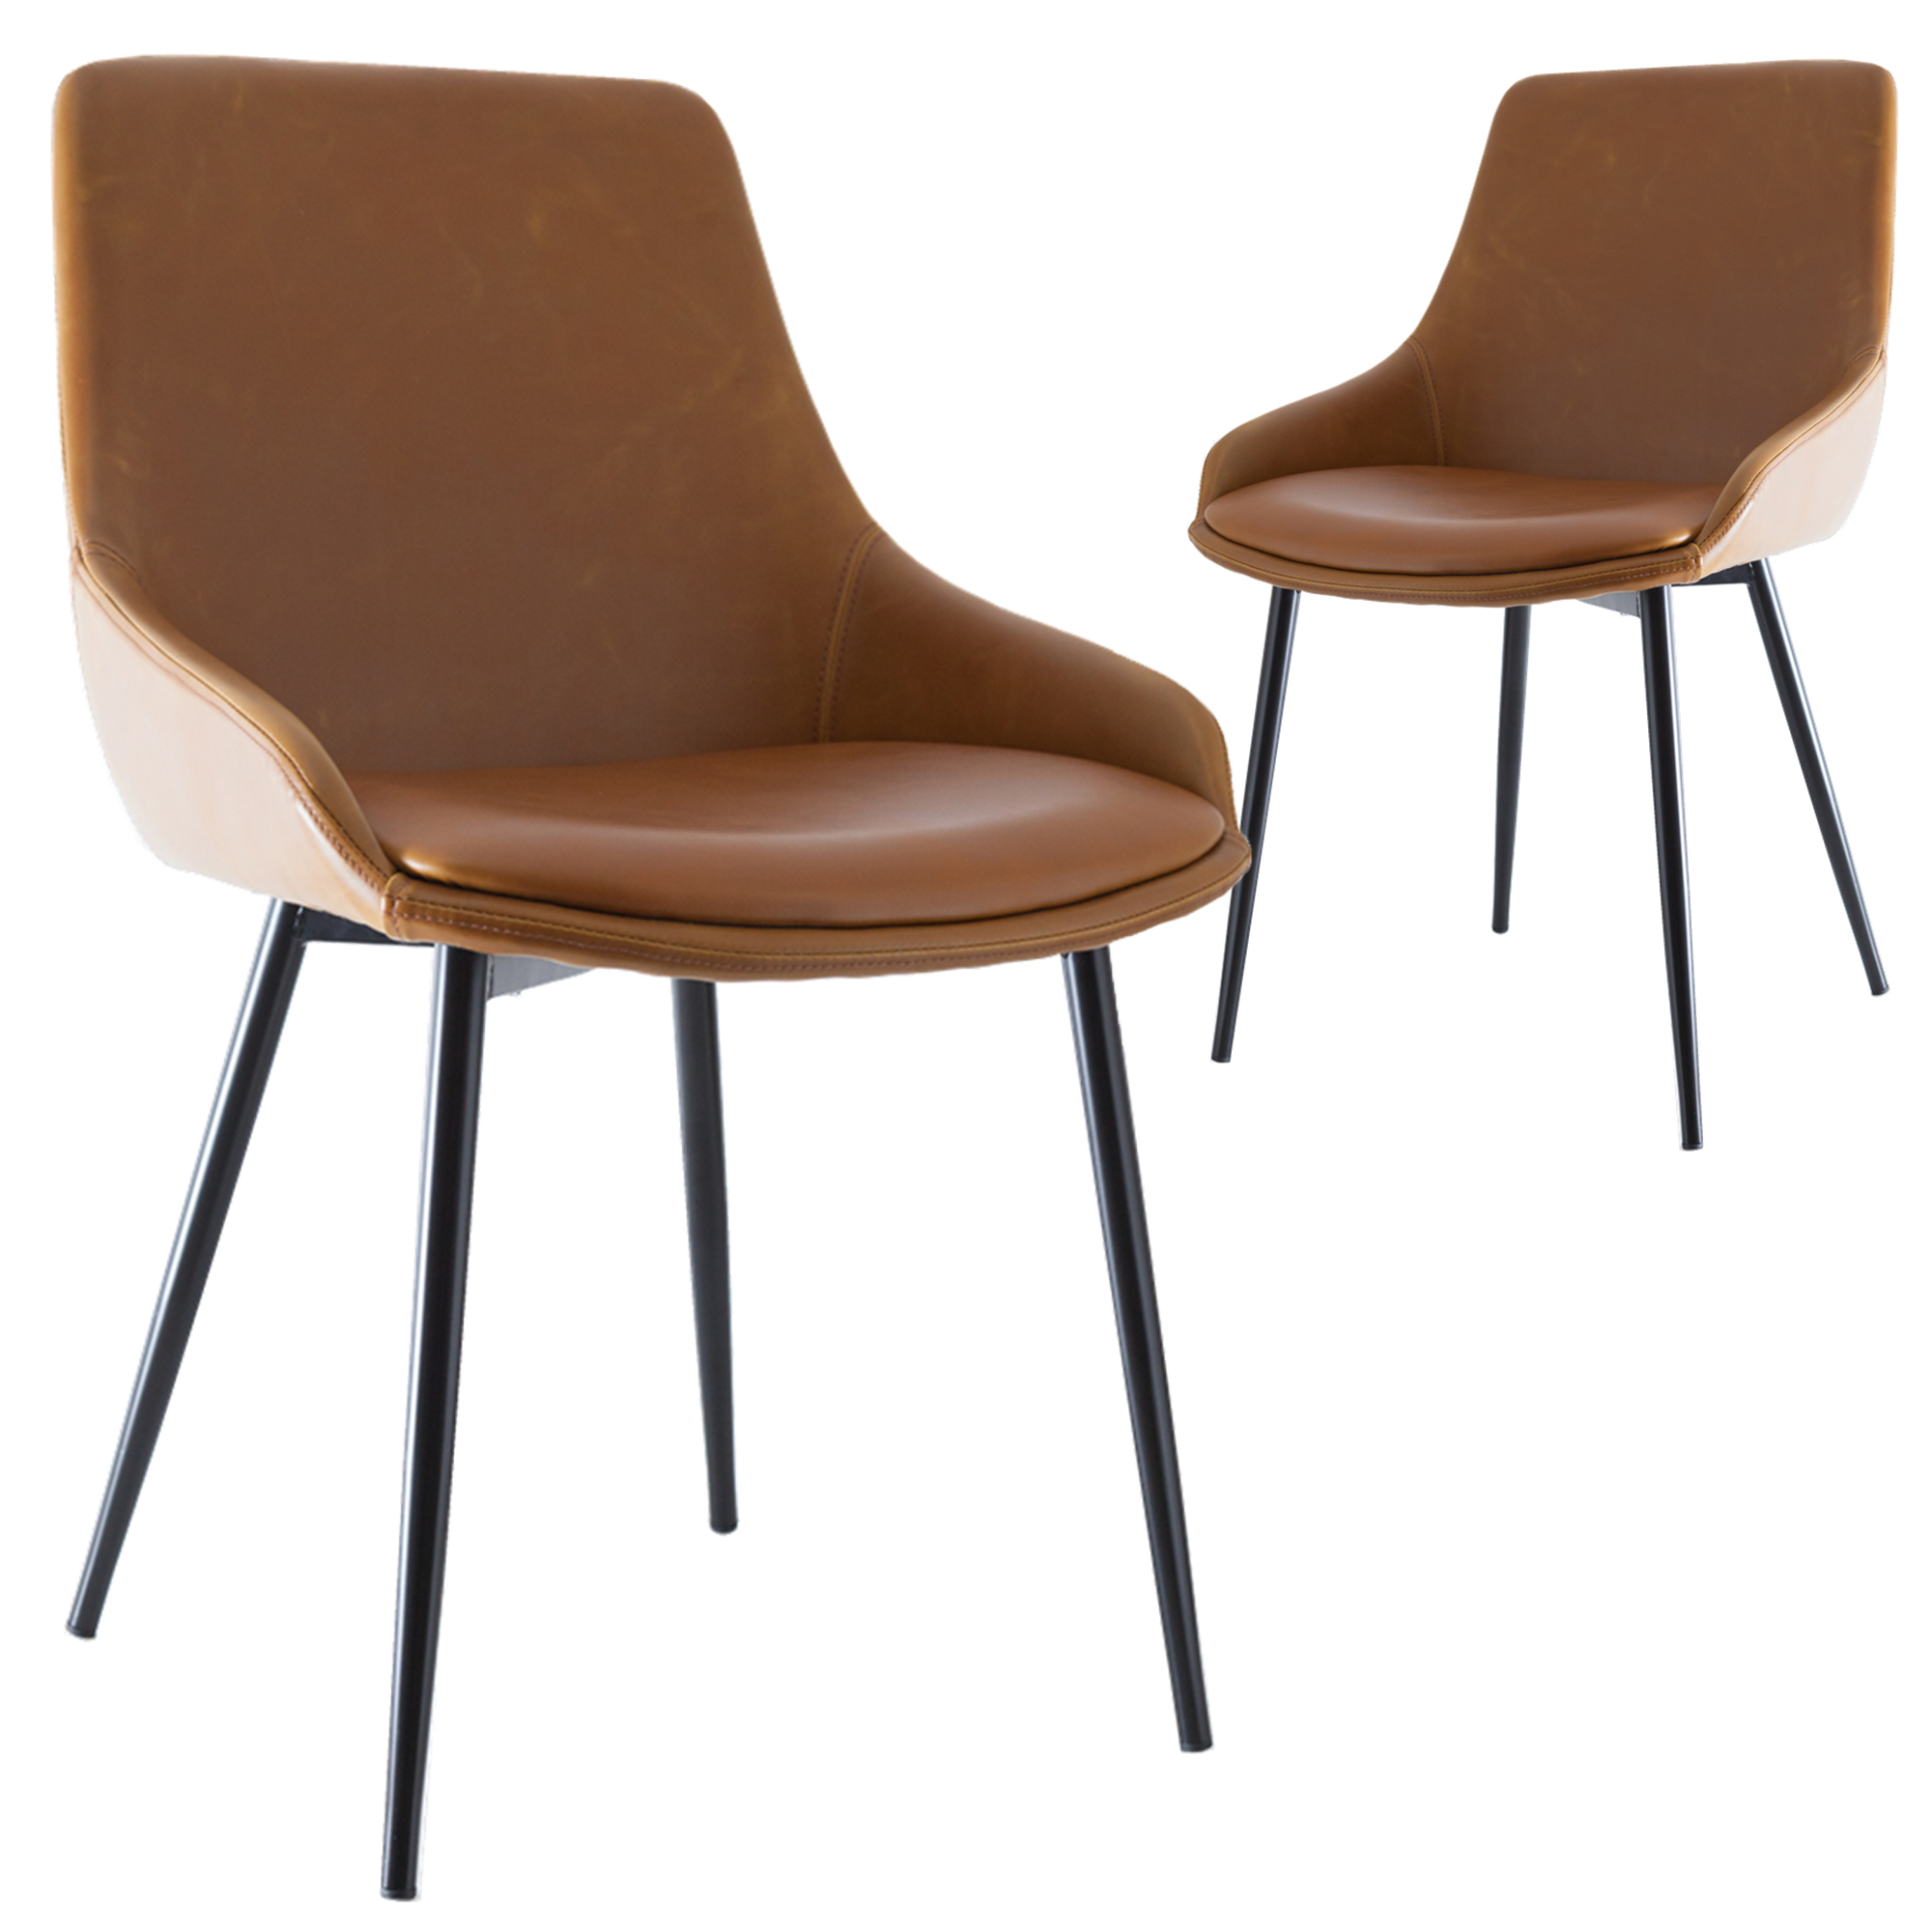 faux leather dining chair covers beach webbing new set of 2 tan lance chairs ebay